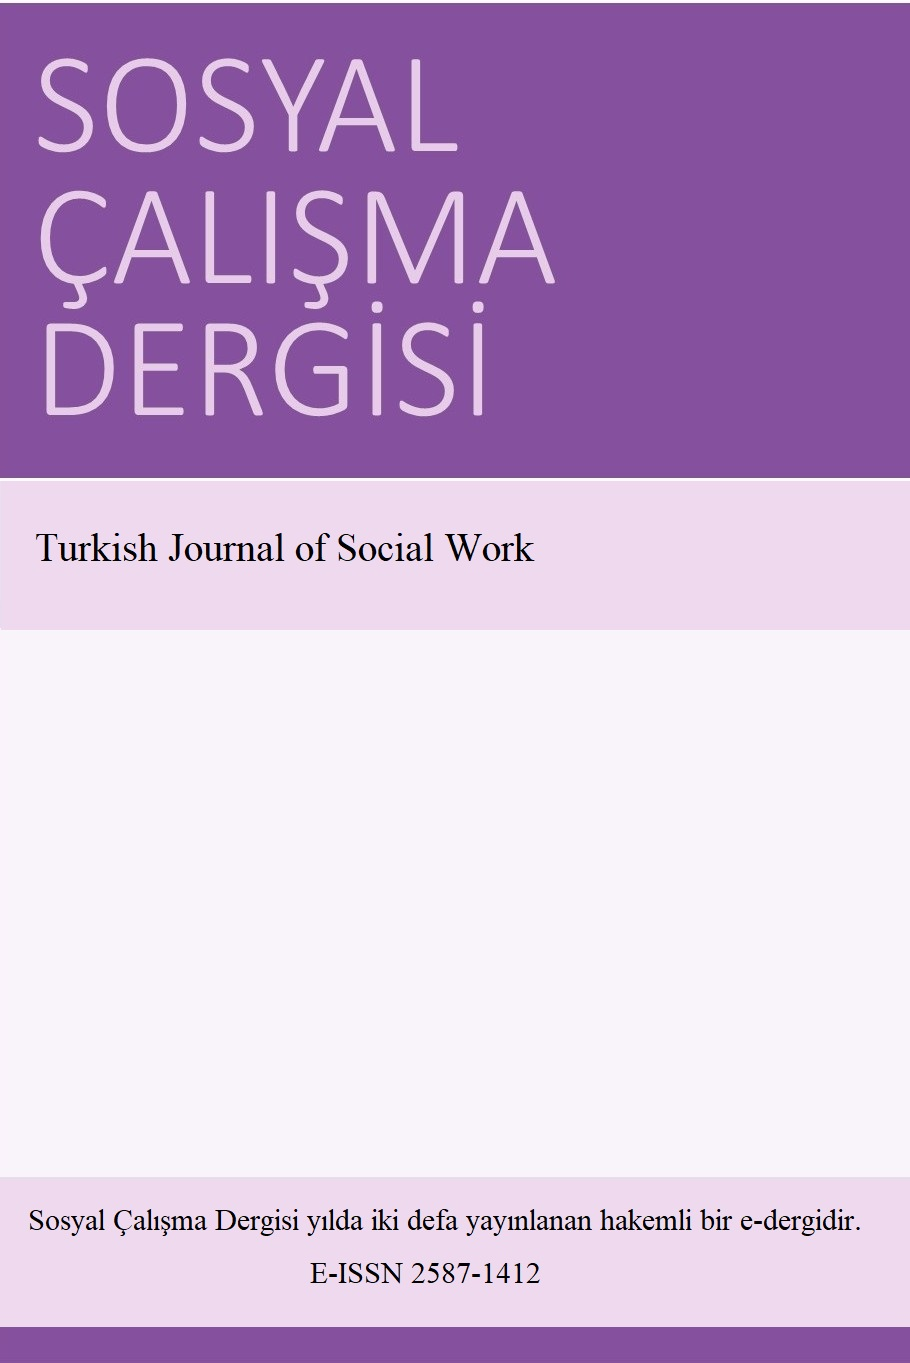 Turkish Journal of Social Work